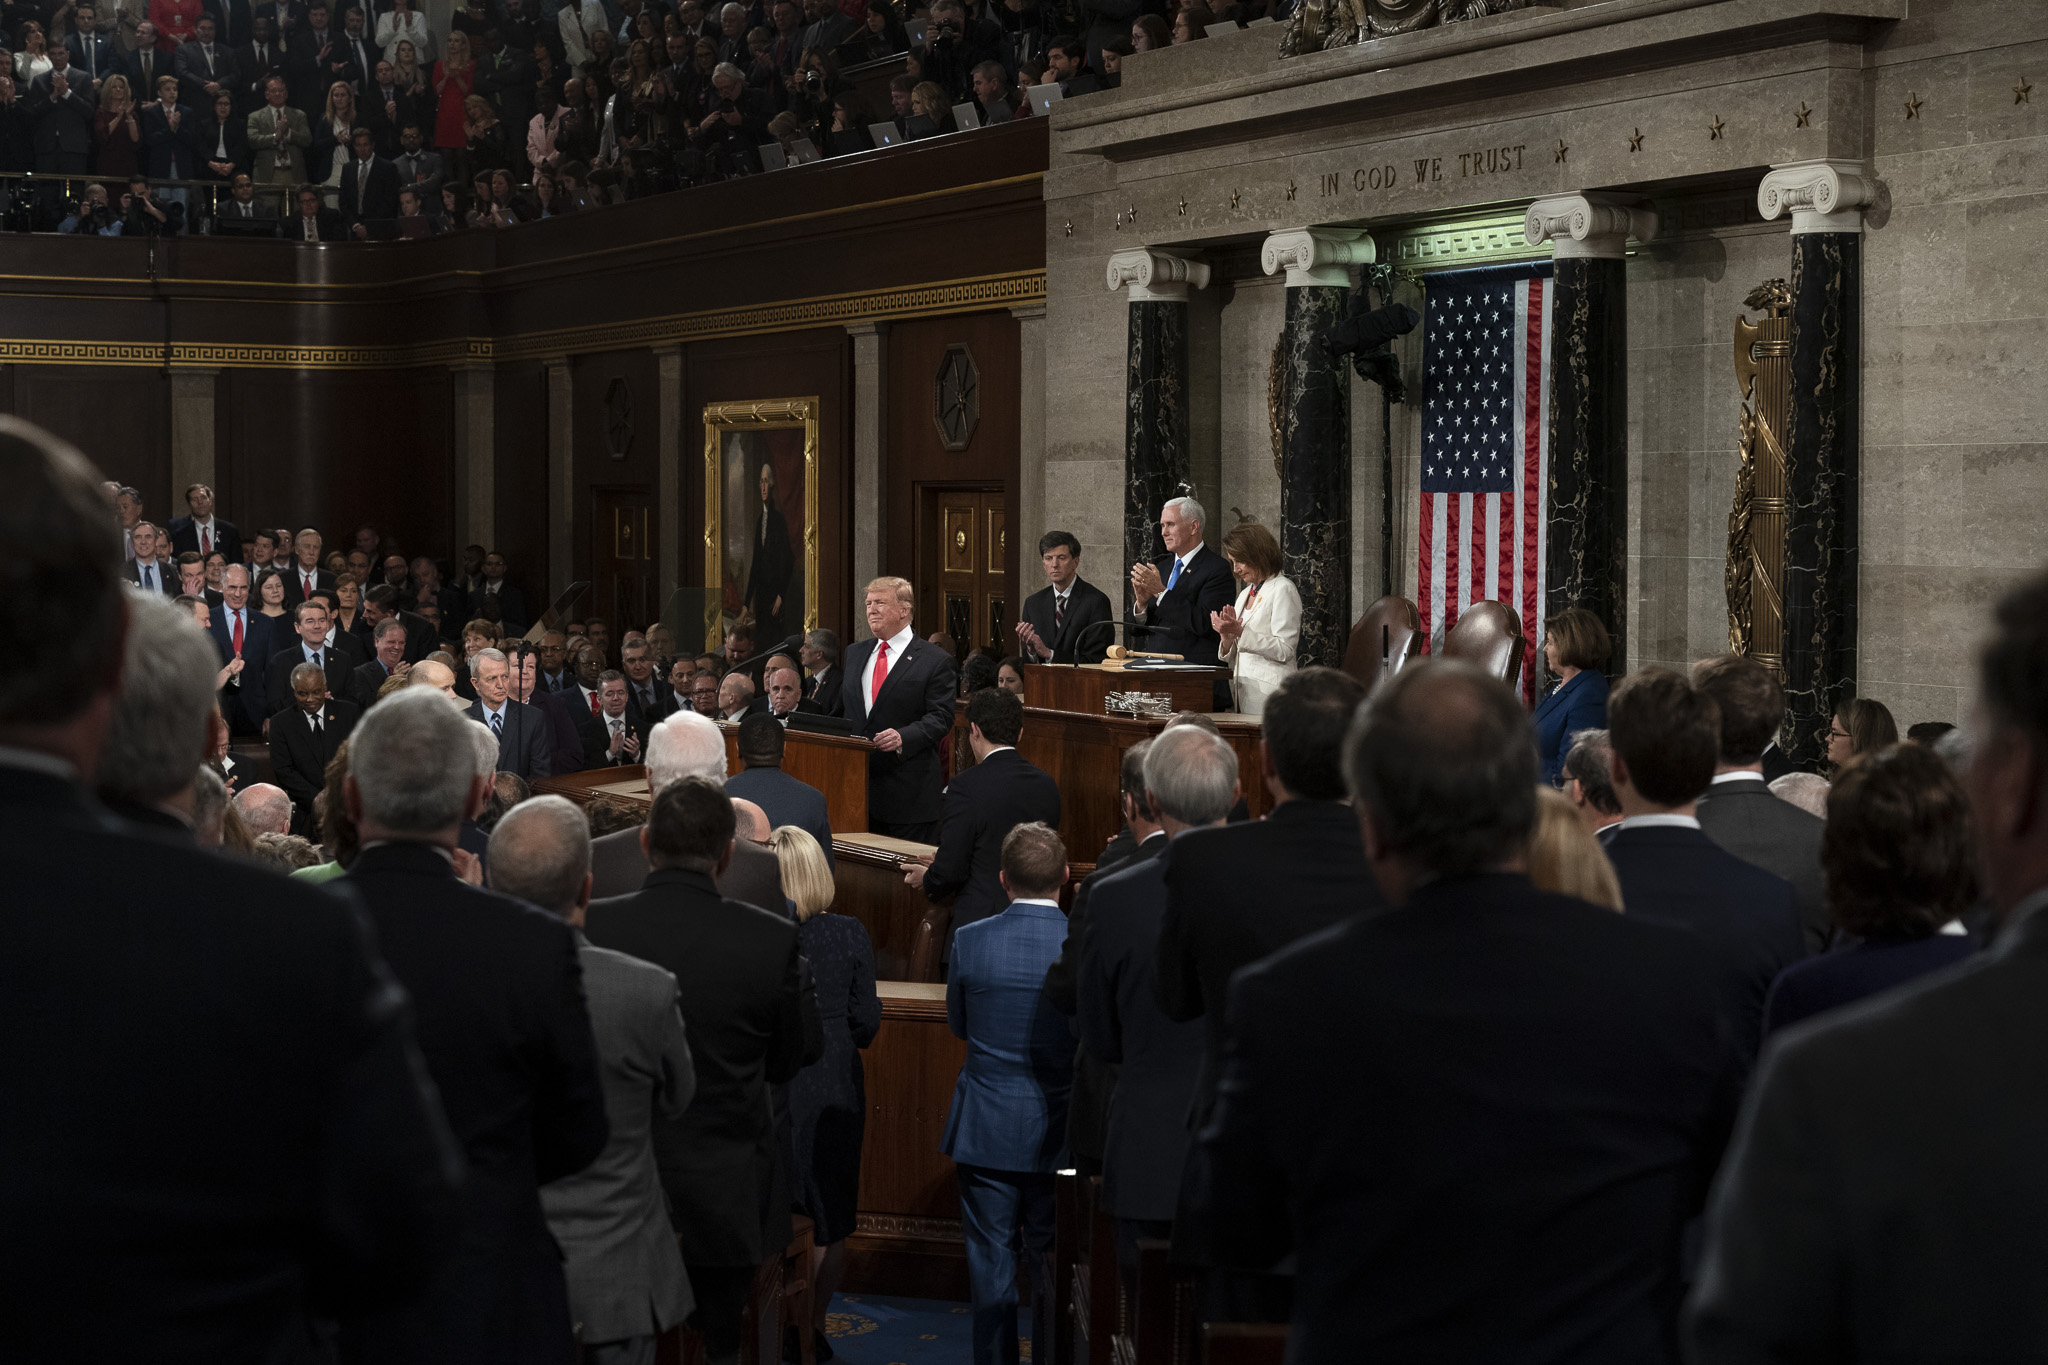 President Donald Trump at the State of the Union. Photo courtesy of the White House.